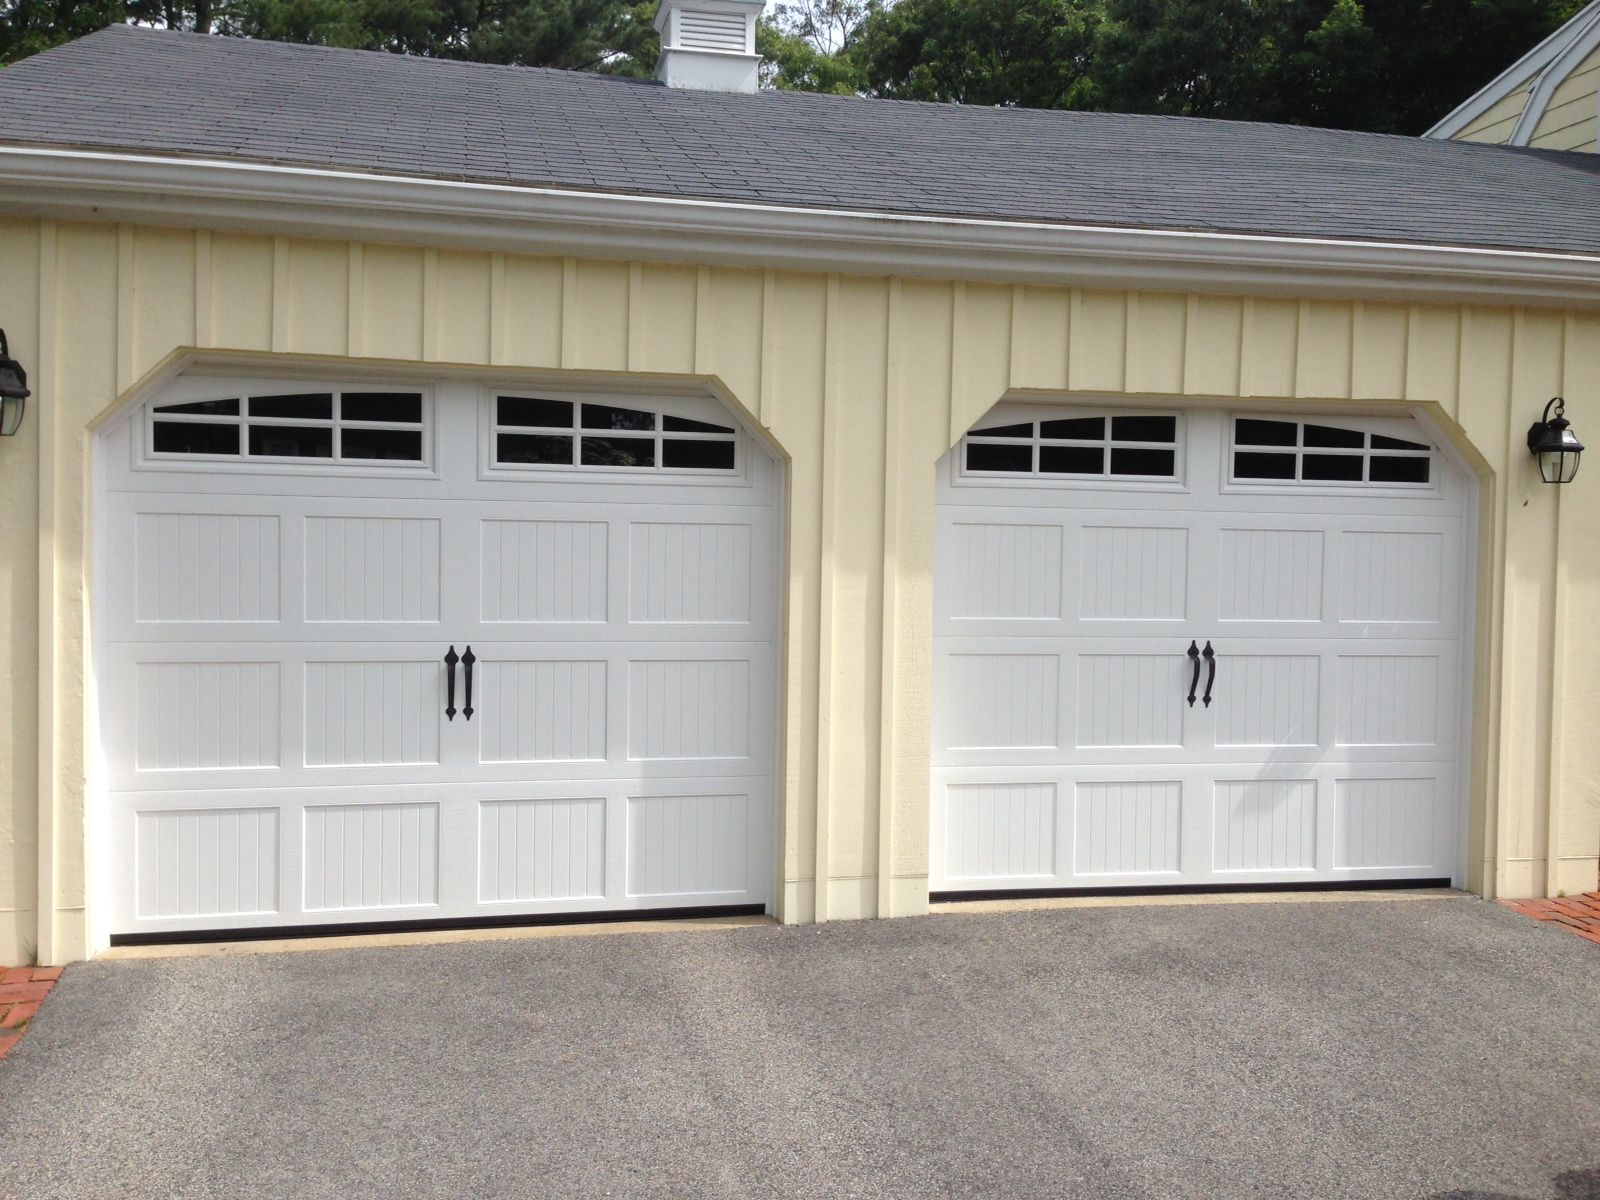 Haas Model 660 Steel Carriage House Style Garage Doors In